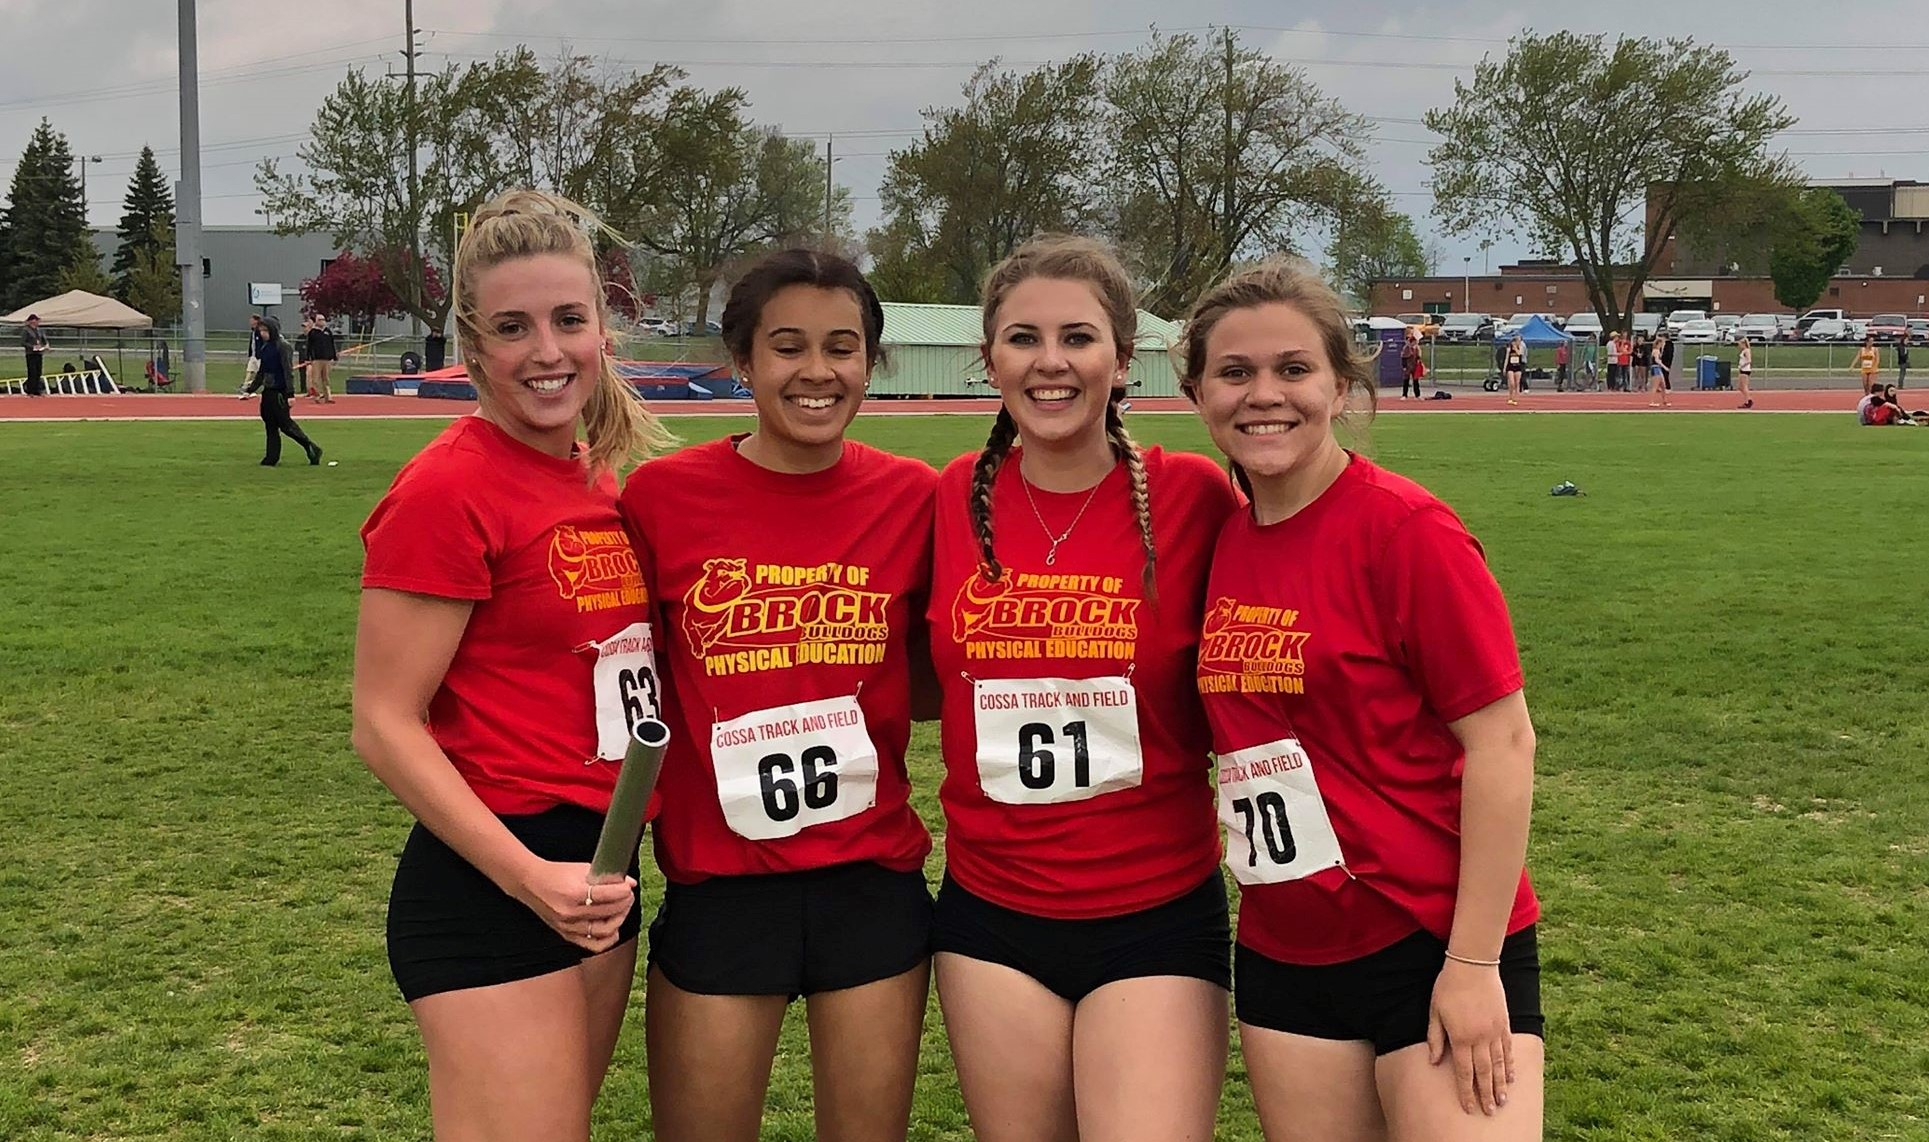 Brock High athletes shine at COSSA track and field meet